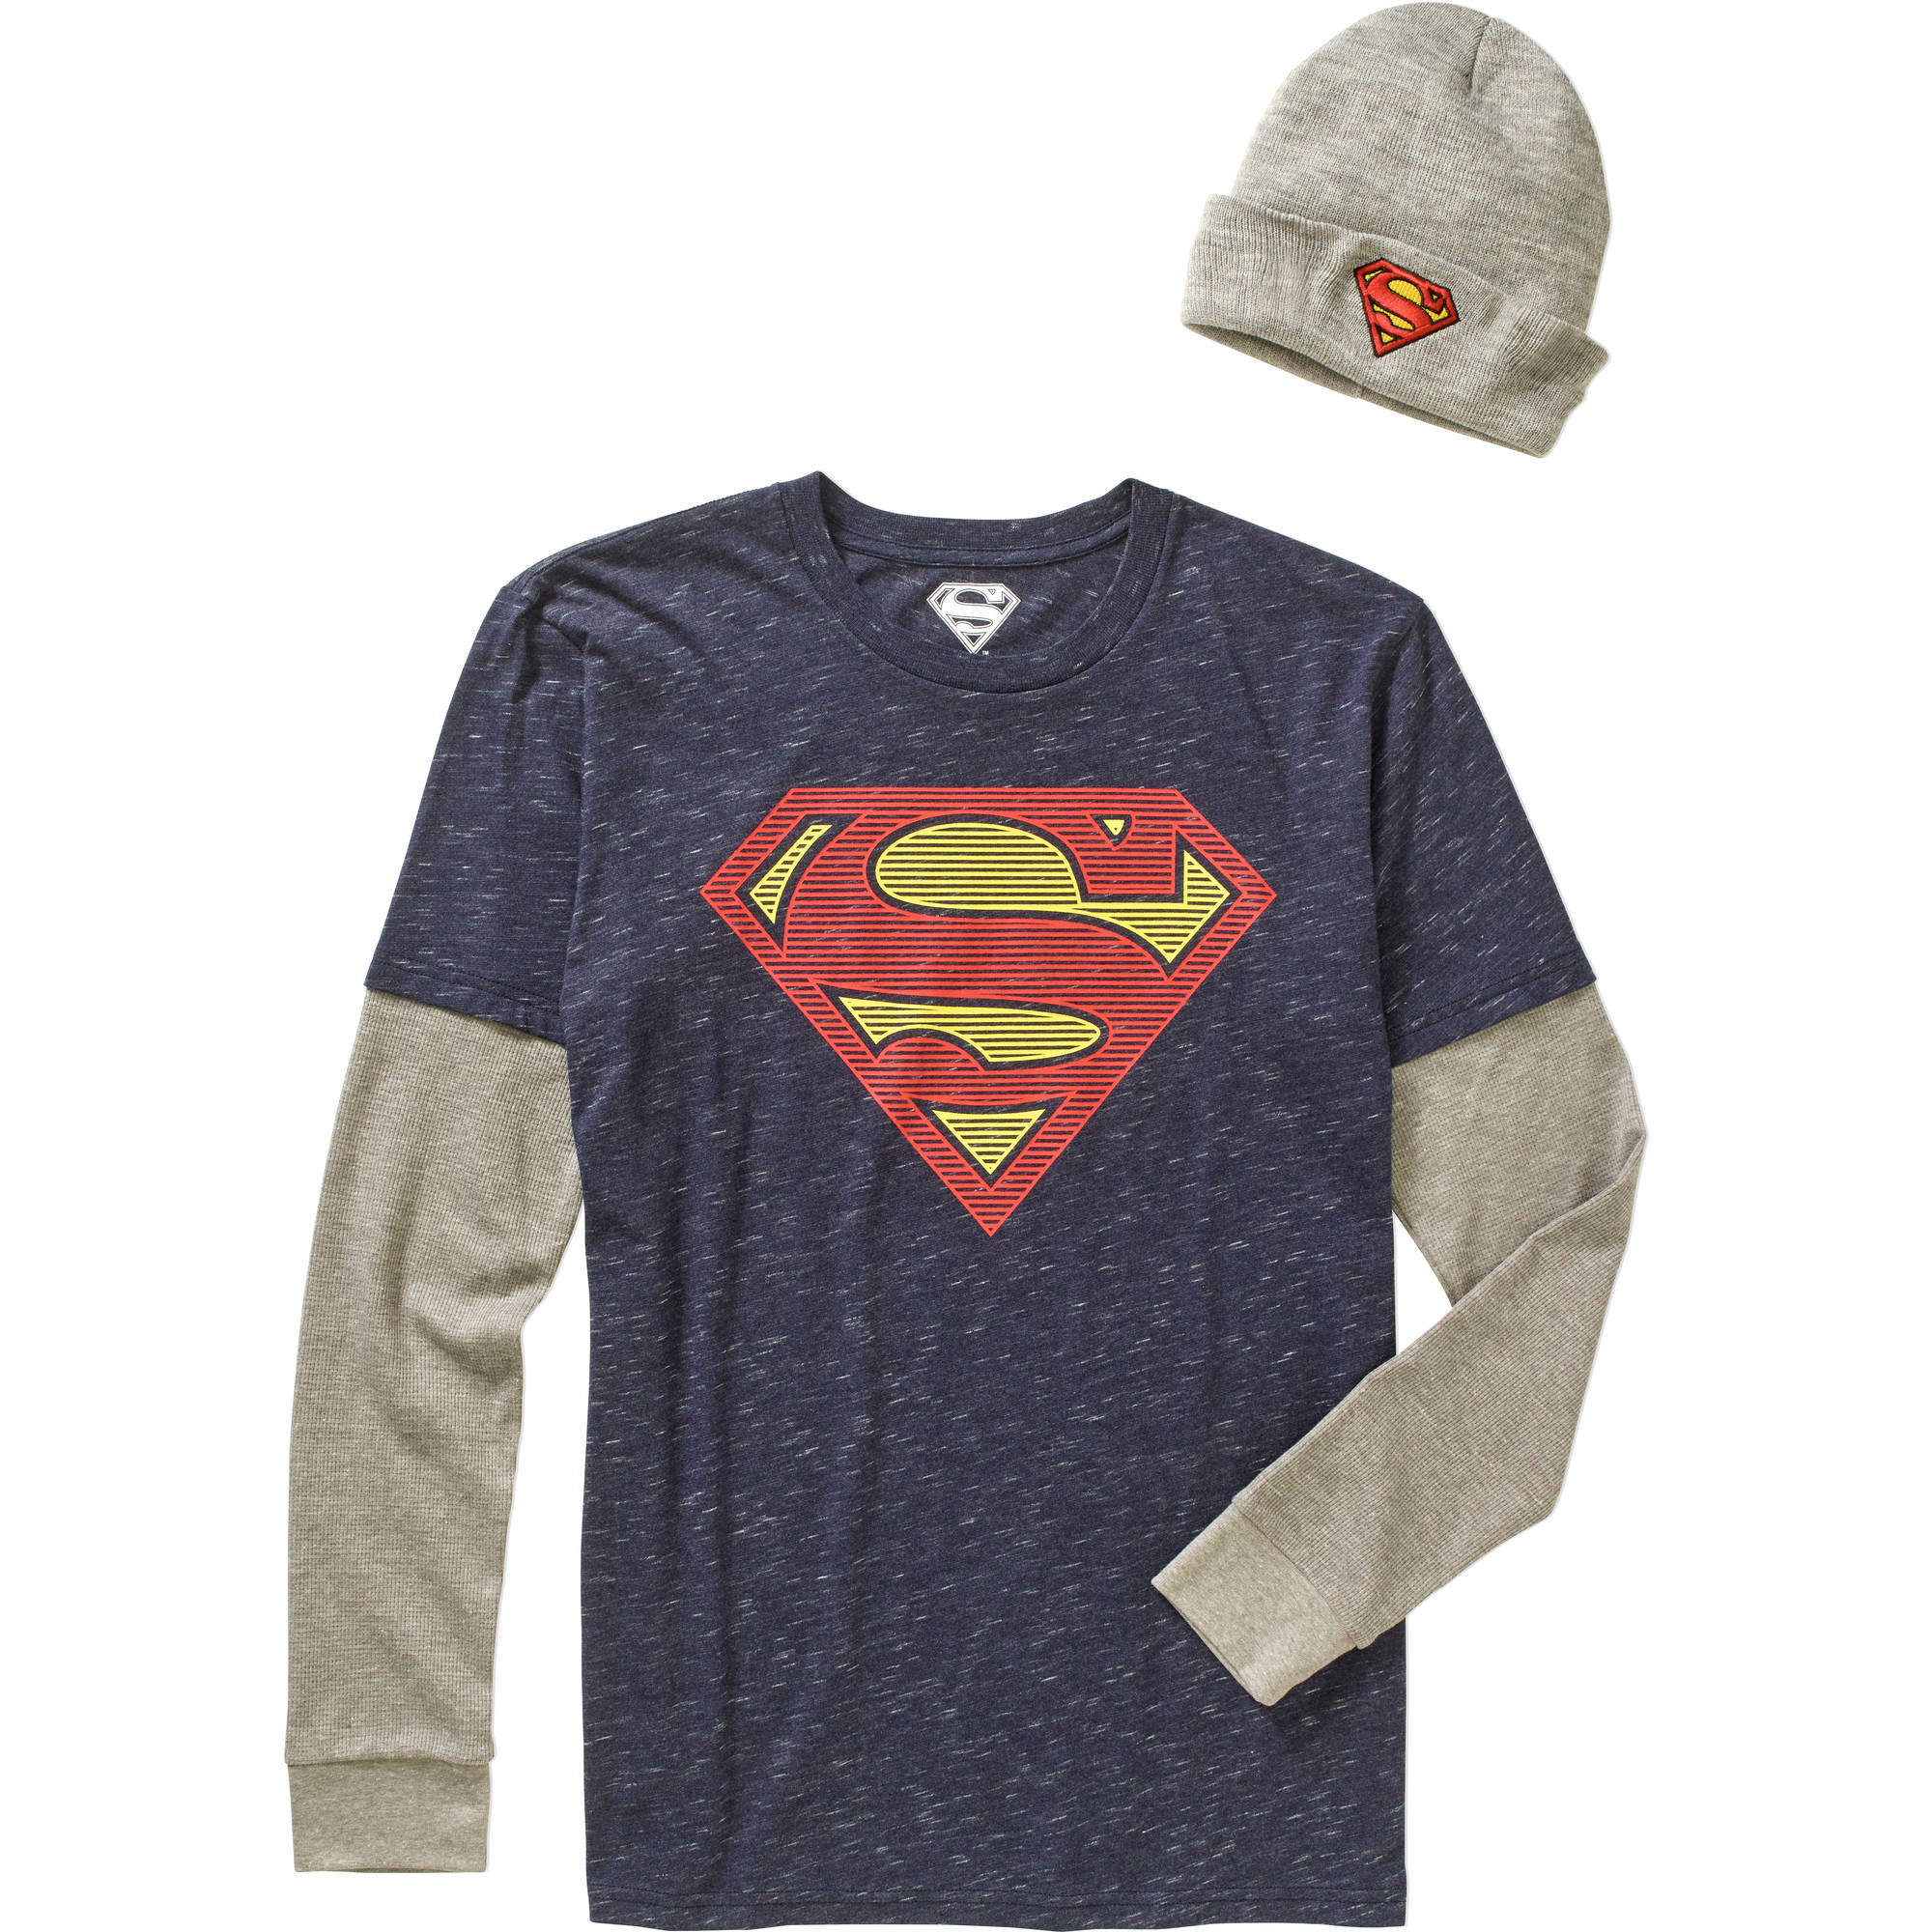 Superman Big Men's Shirt & Beanie Combo, 2XL